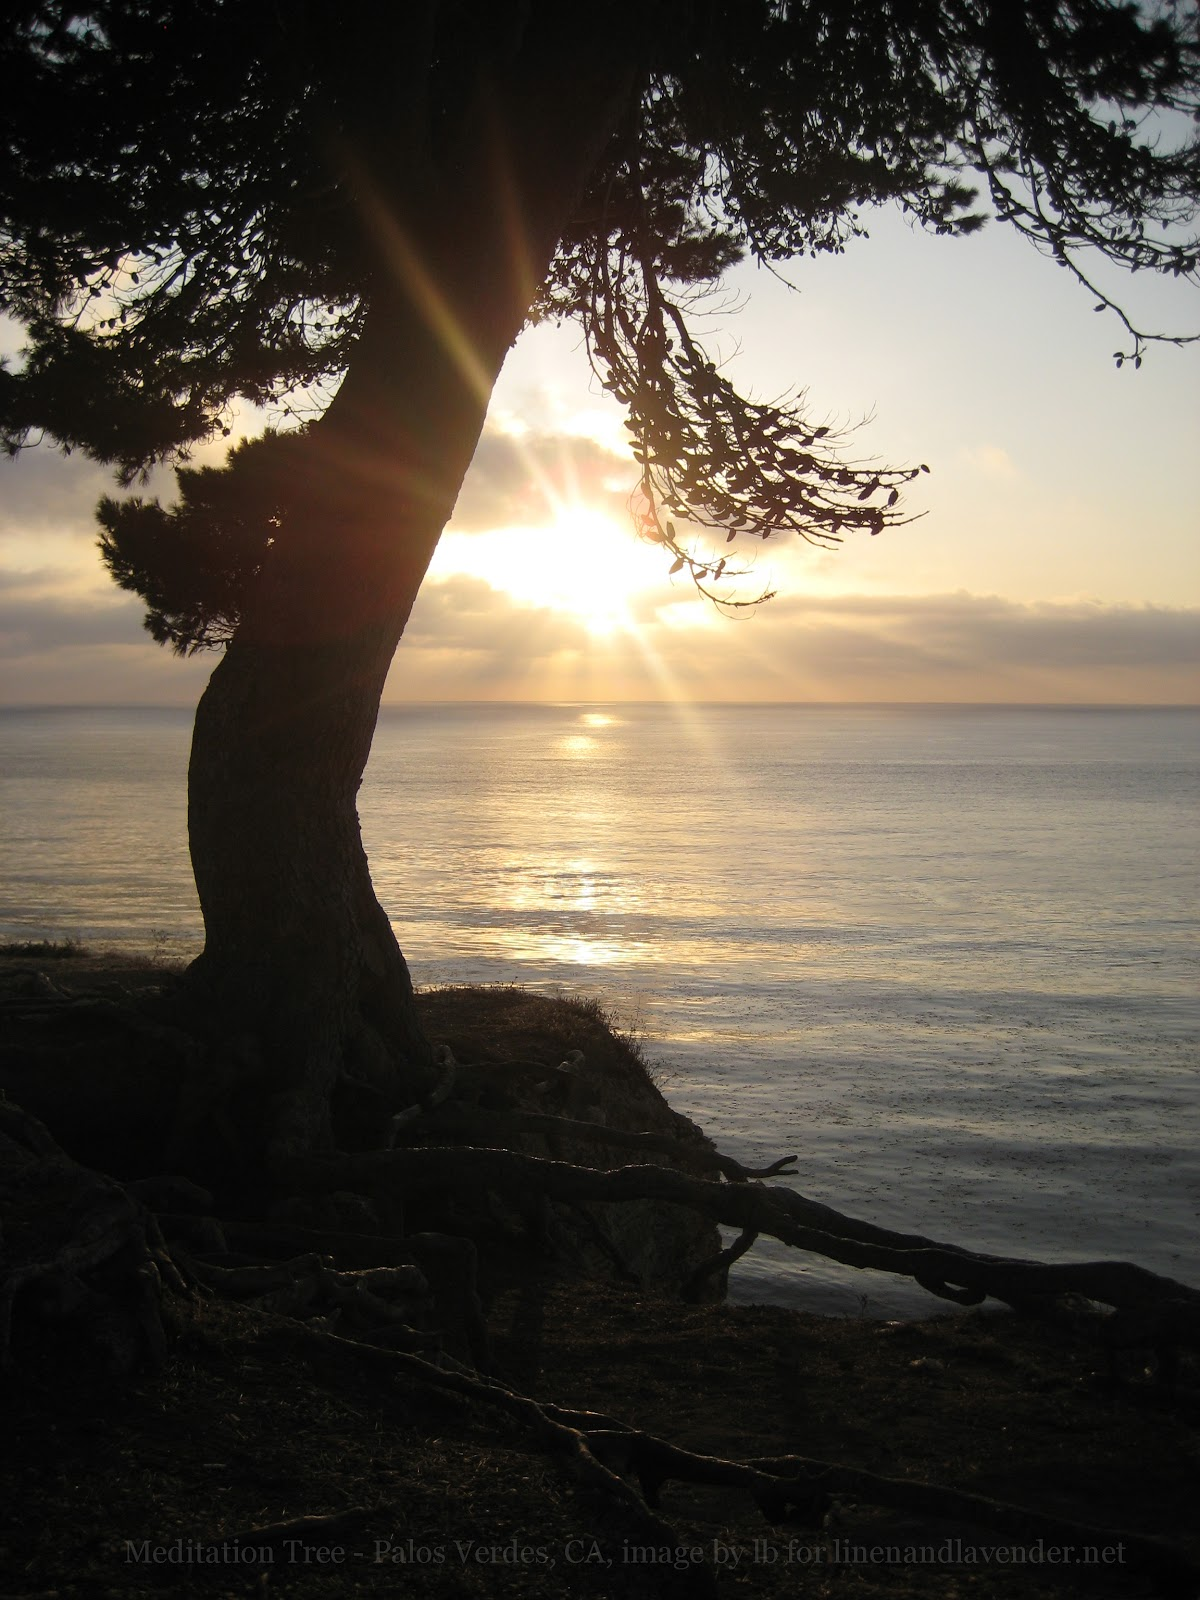 Meditation Tree - Palos Verdes, California - image by lb for linenandlavender.net - http://www.linenandlavender.net/p/inspired-quotes-and-images.html